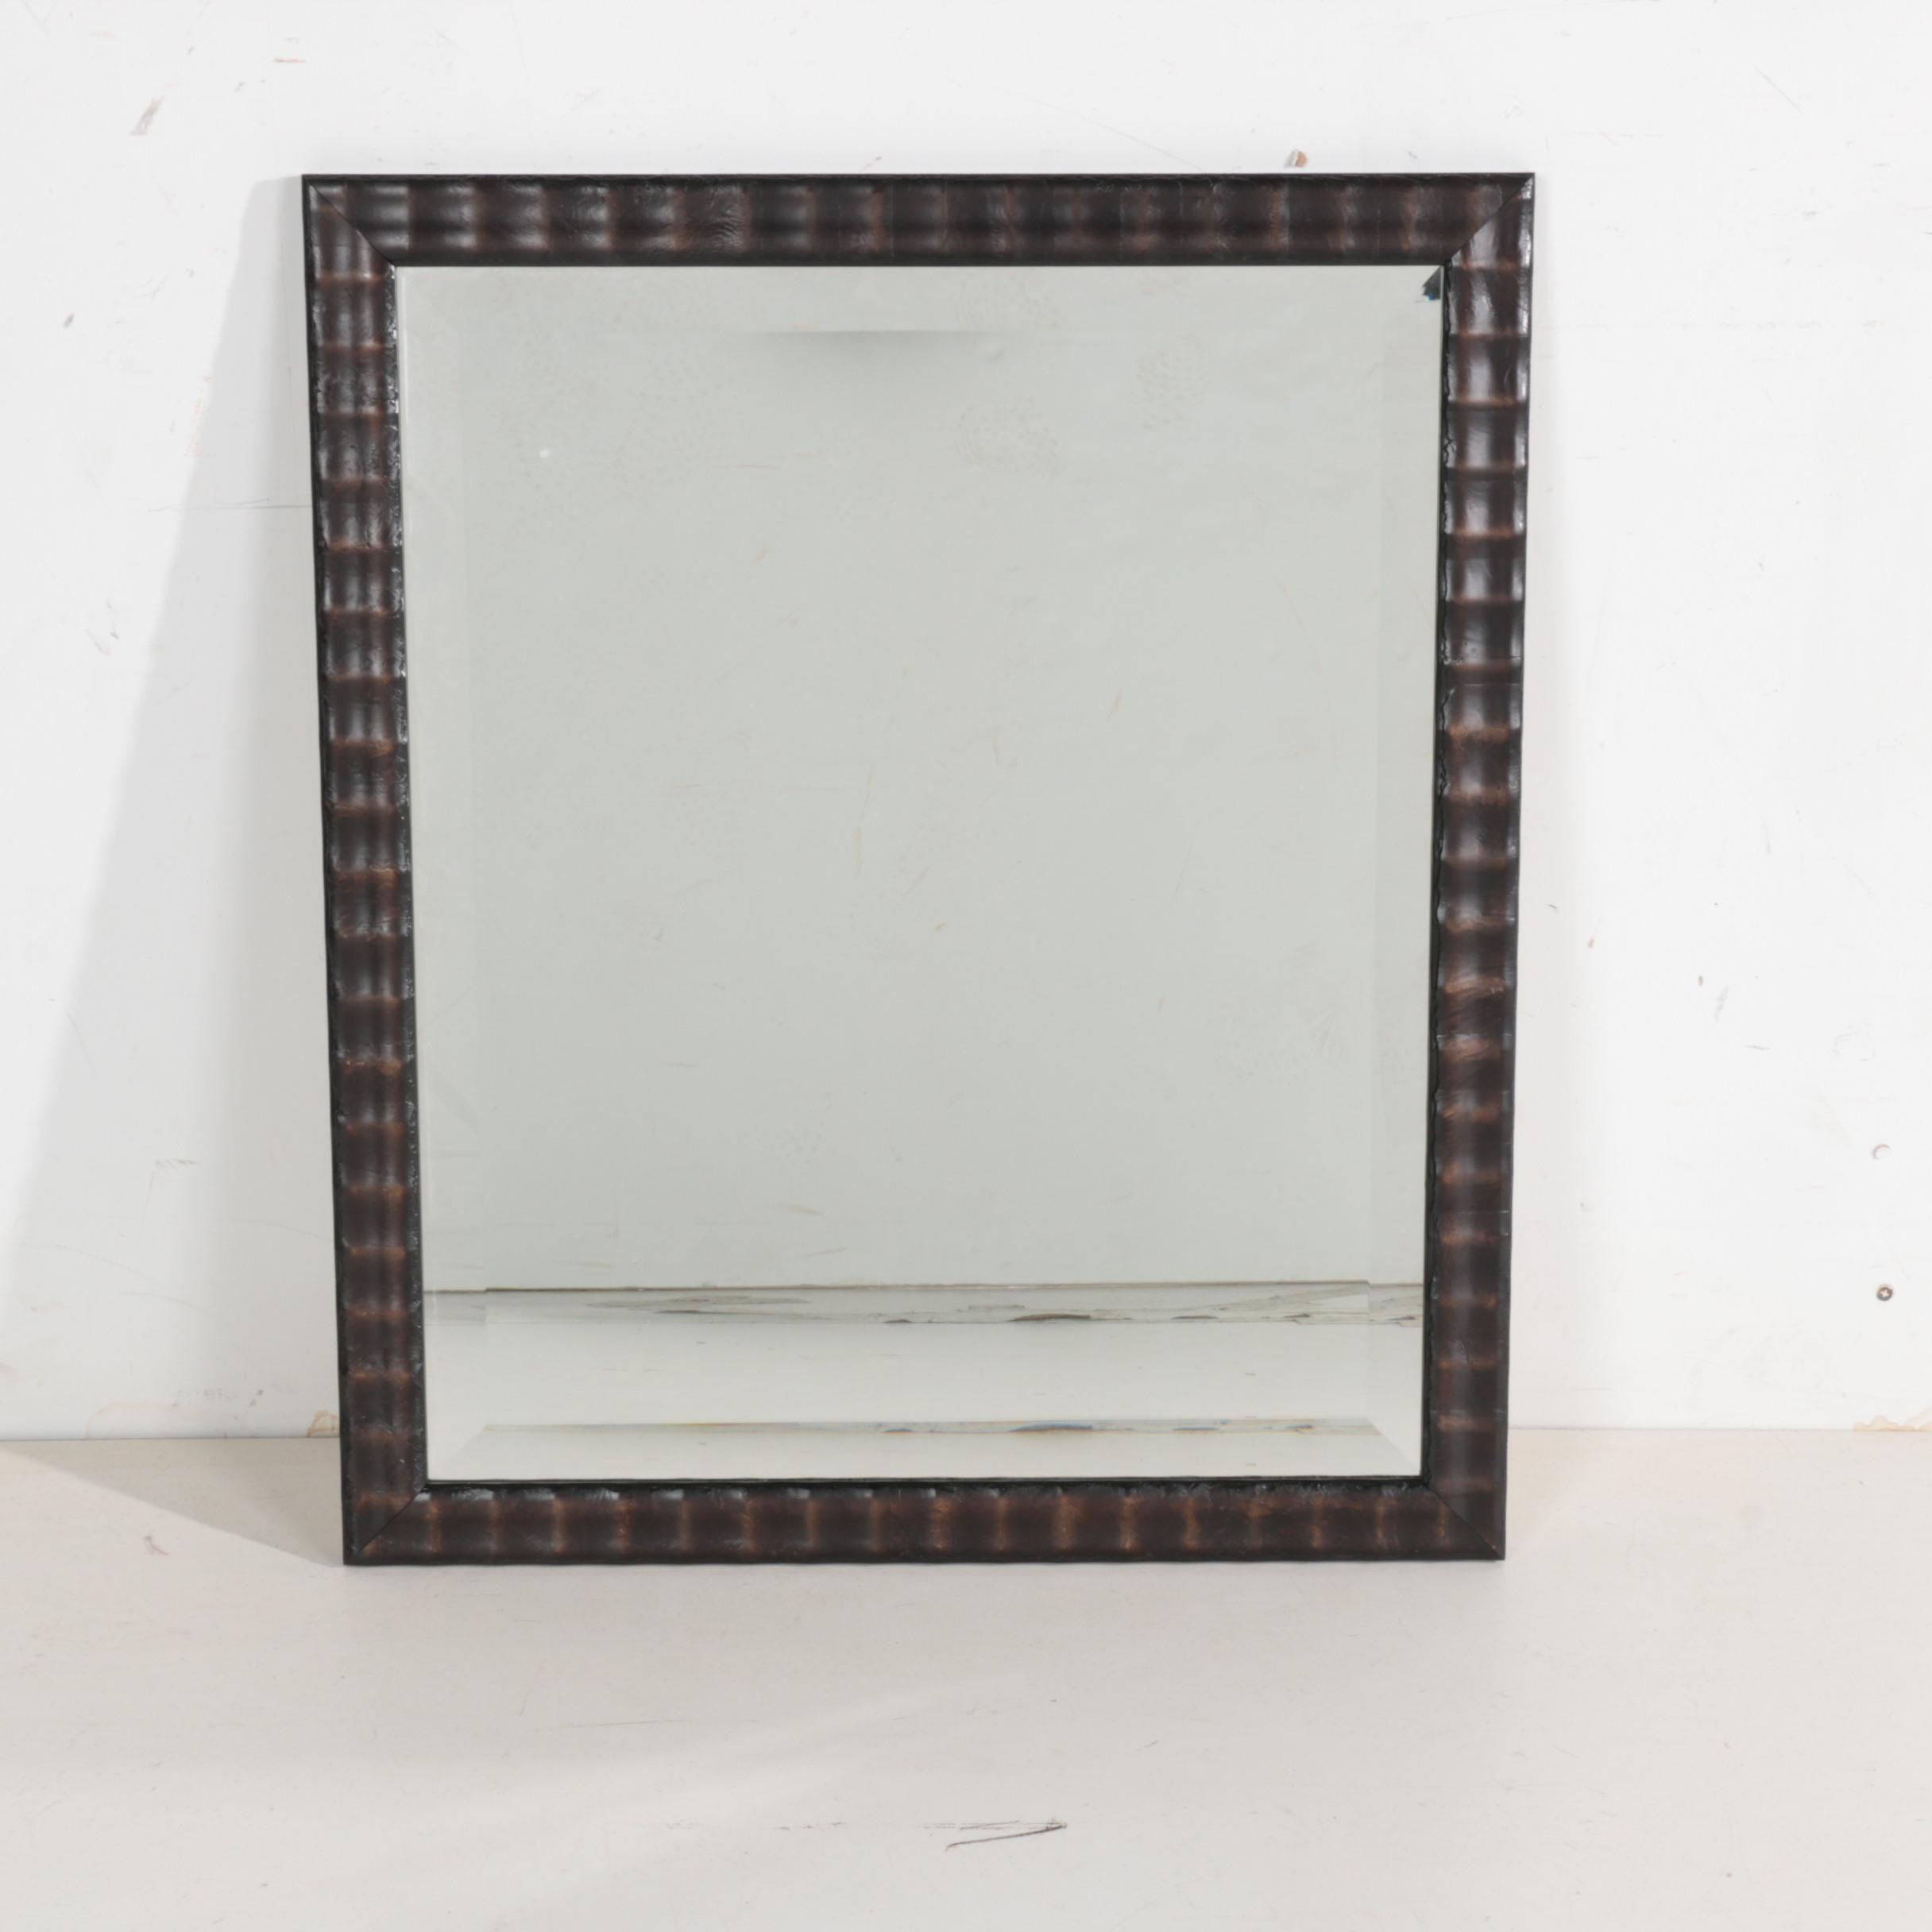 Italian Made Wood Framed Wall Mirror